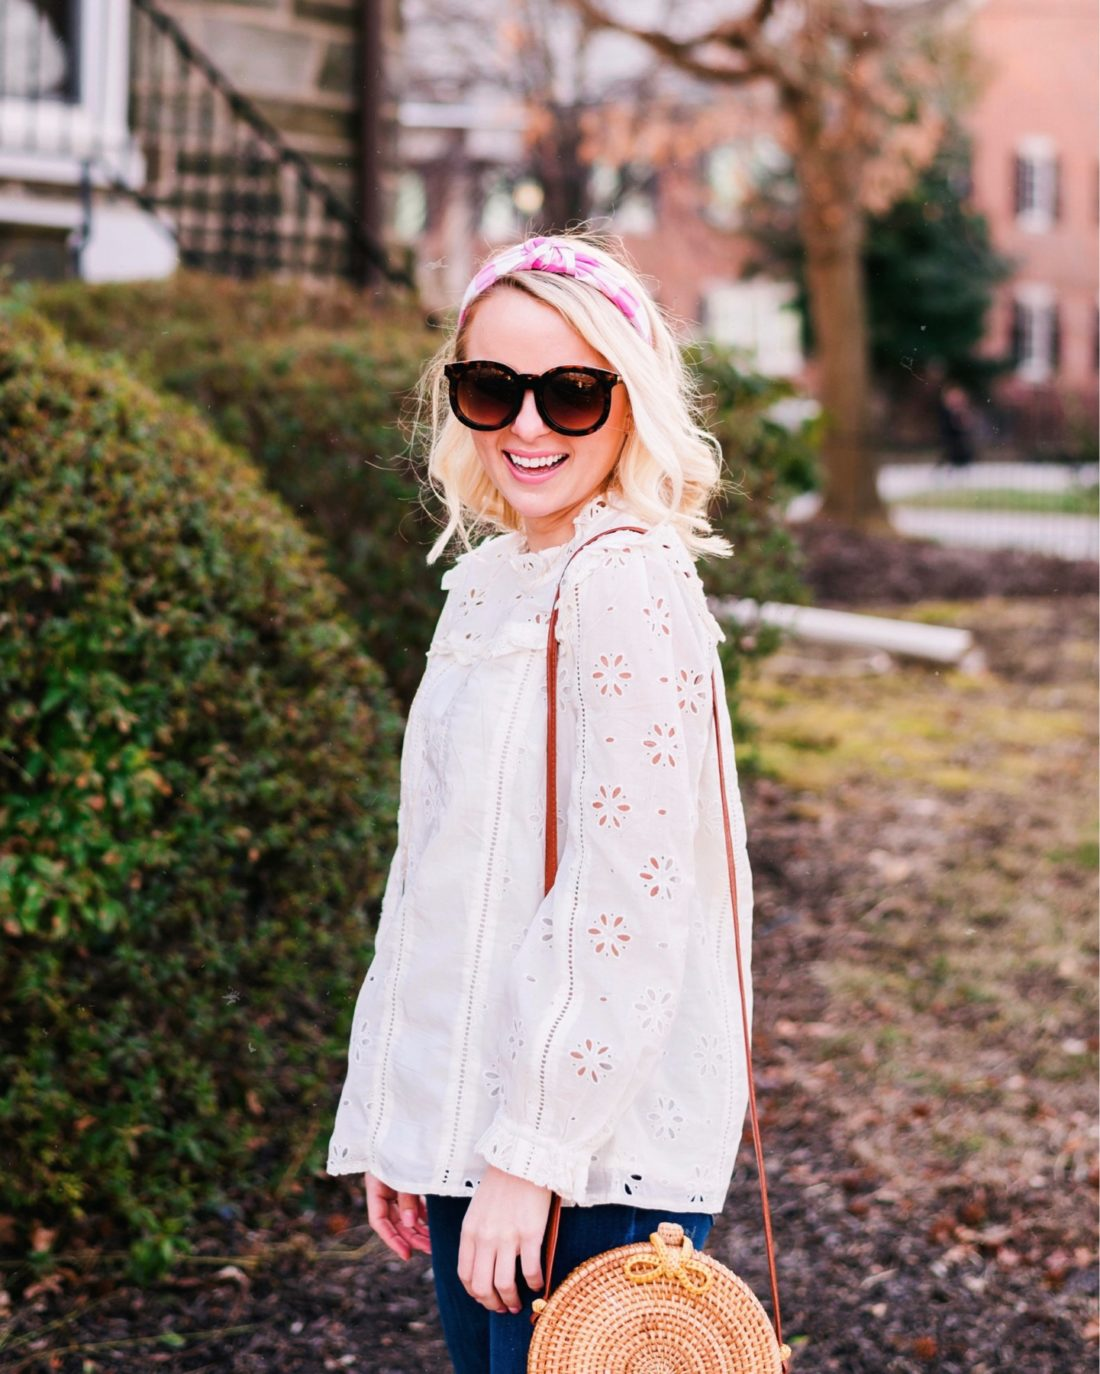 J. Crew eyelet top and gingham headband with rattan bag